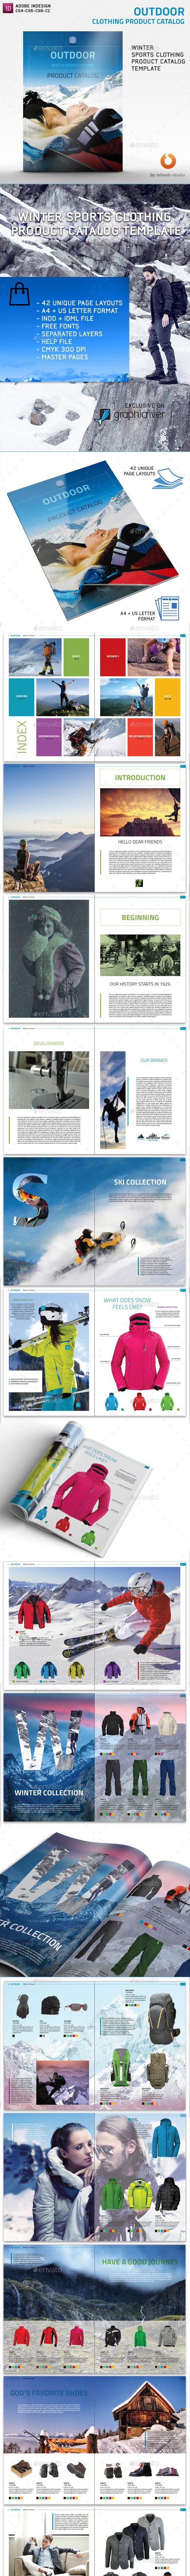 Clothing Product Catalog - Catalogs Brochures